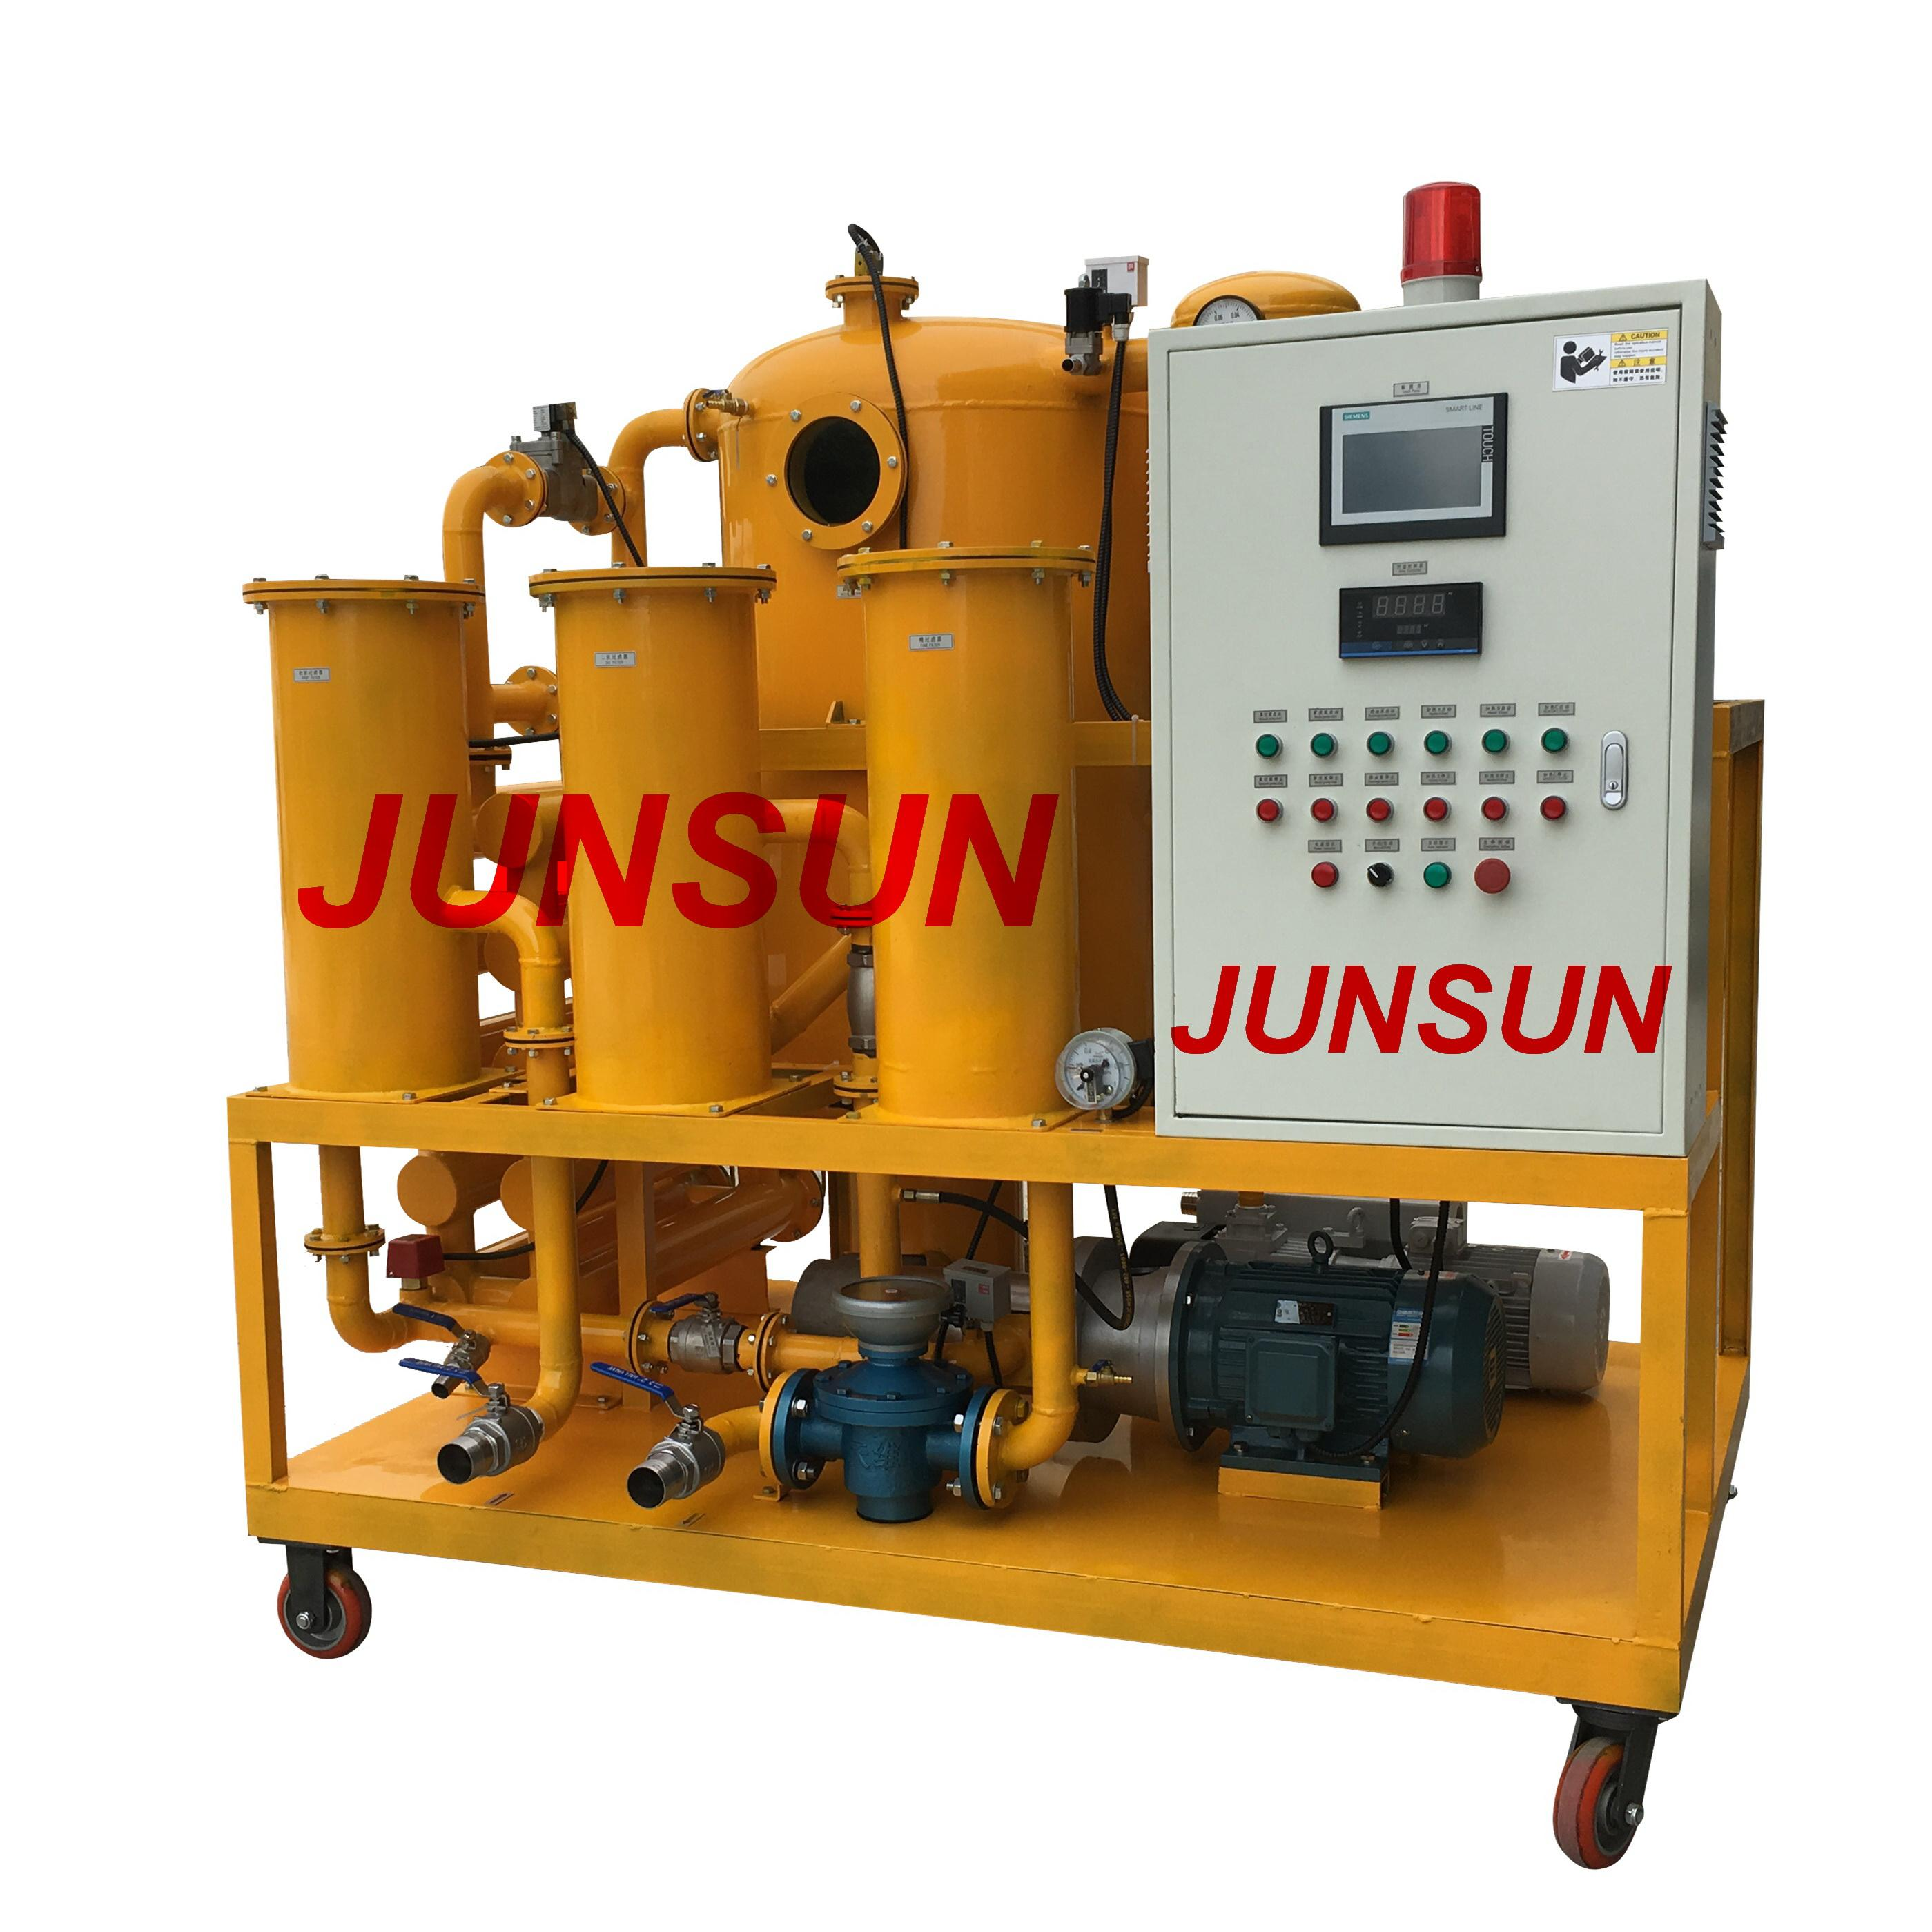 JUNSUN Insulation Oil Purifier/ Mobile Transformer Oil Purification Plant With Siemens PLC